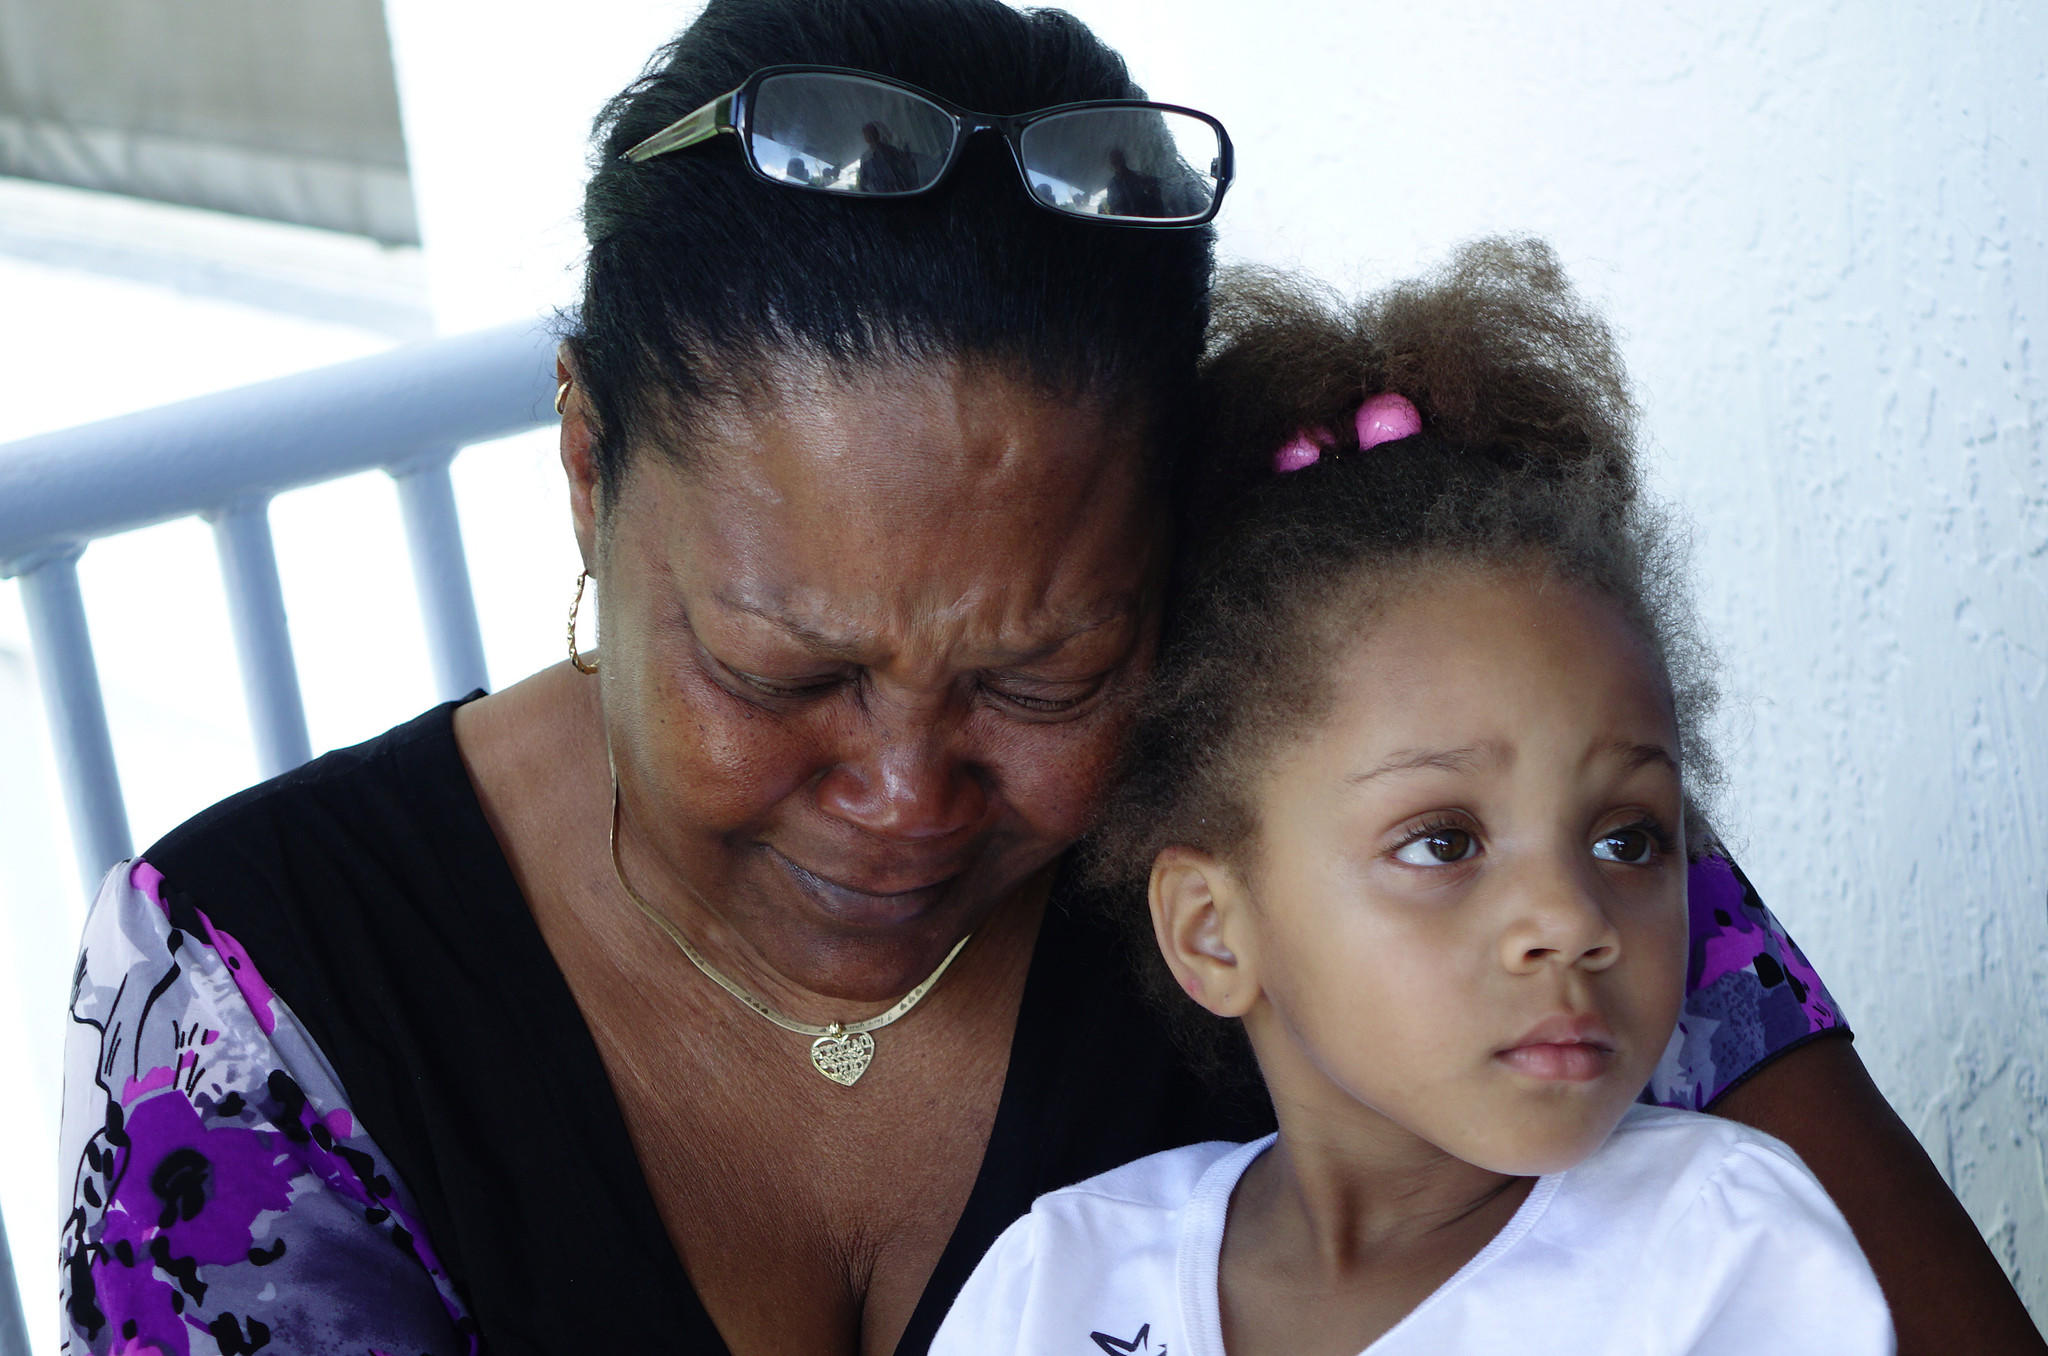 Pamela Baker, mother of shooting victim Darrel Joshua Baker, 25, is seen along with his daughter Alaaliyah Baker, 4, Sunday at the family home in Hollywood.